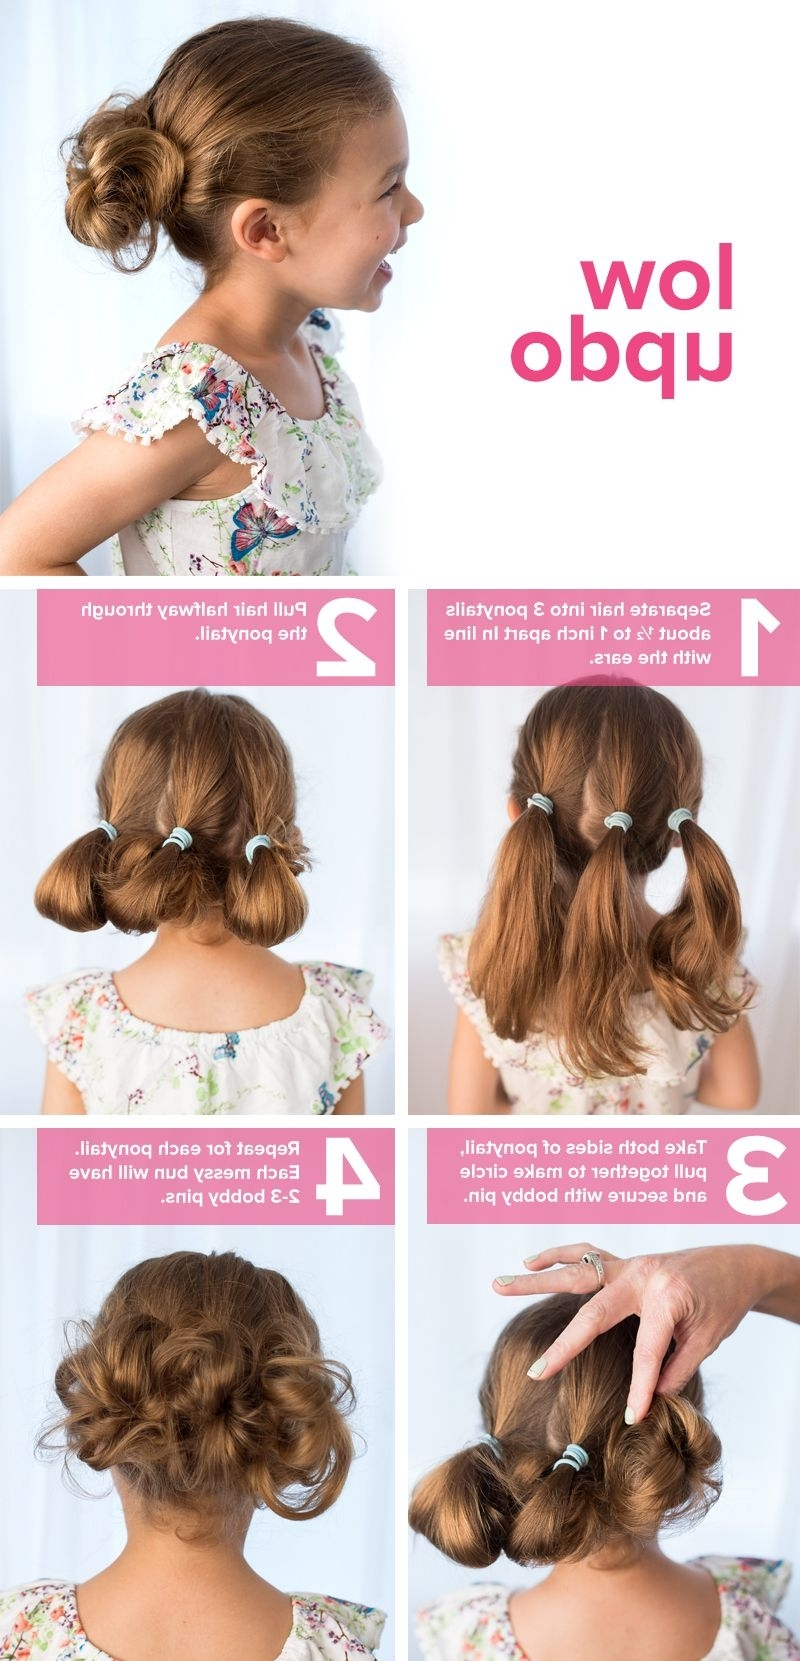 5 Fast, Easy, Cute Hairstyles For Girls | Low Updo, Updo And Kids S Throughout Simple Hair Updo Hairstyles (View 5 of 15)